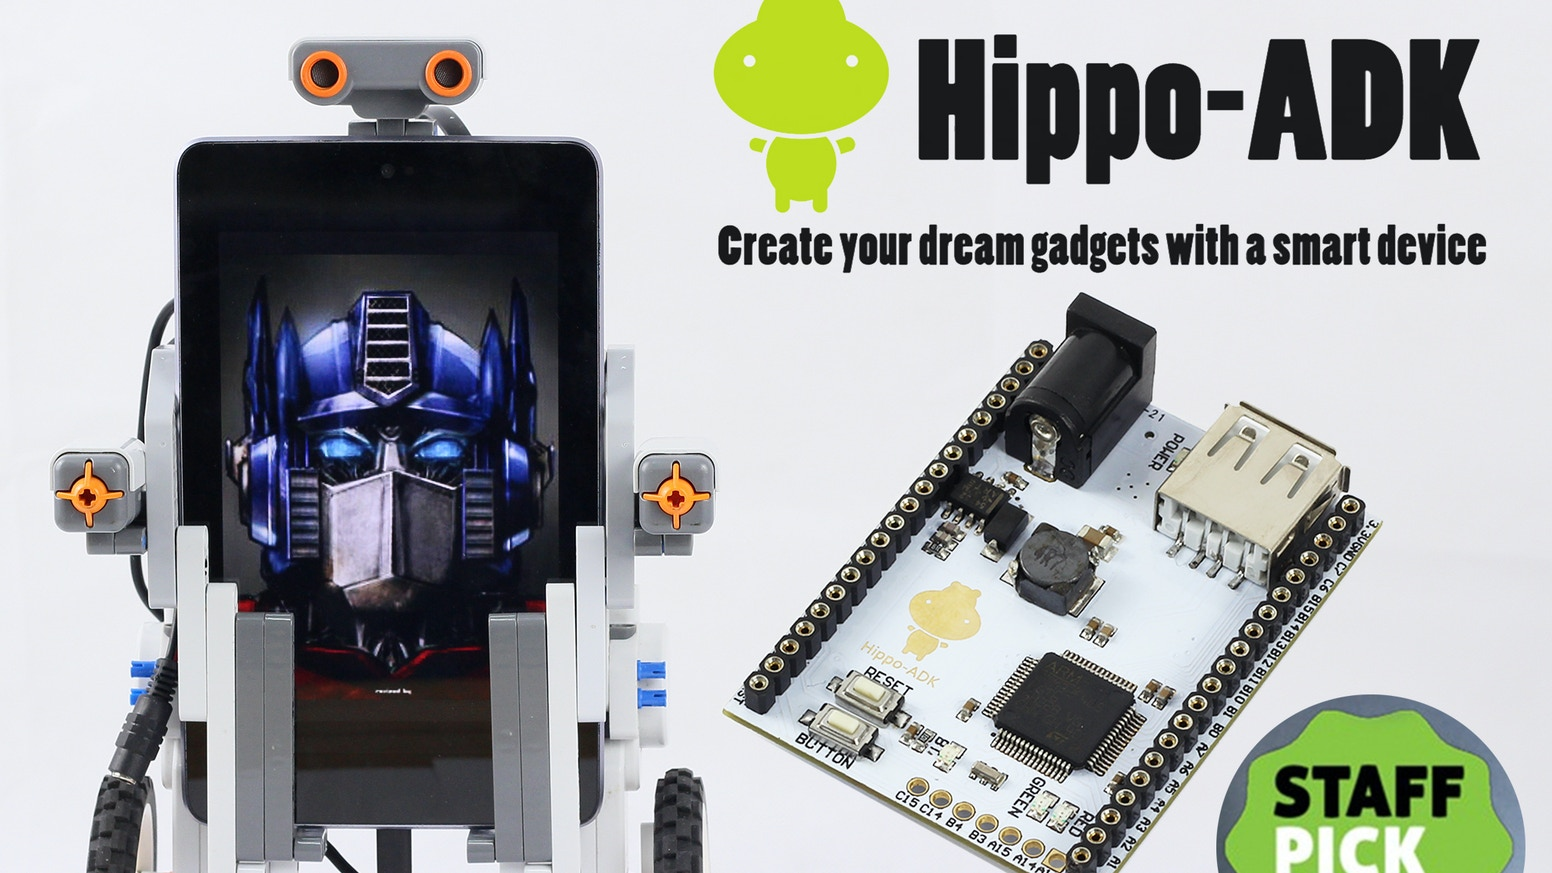 Hippo-ADK: Create your dream gadget with a smart device by Hippo ...